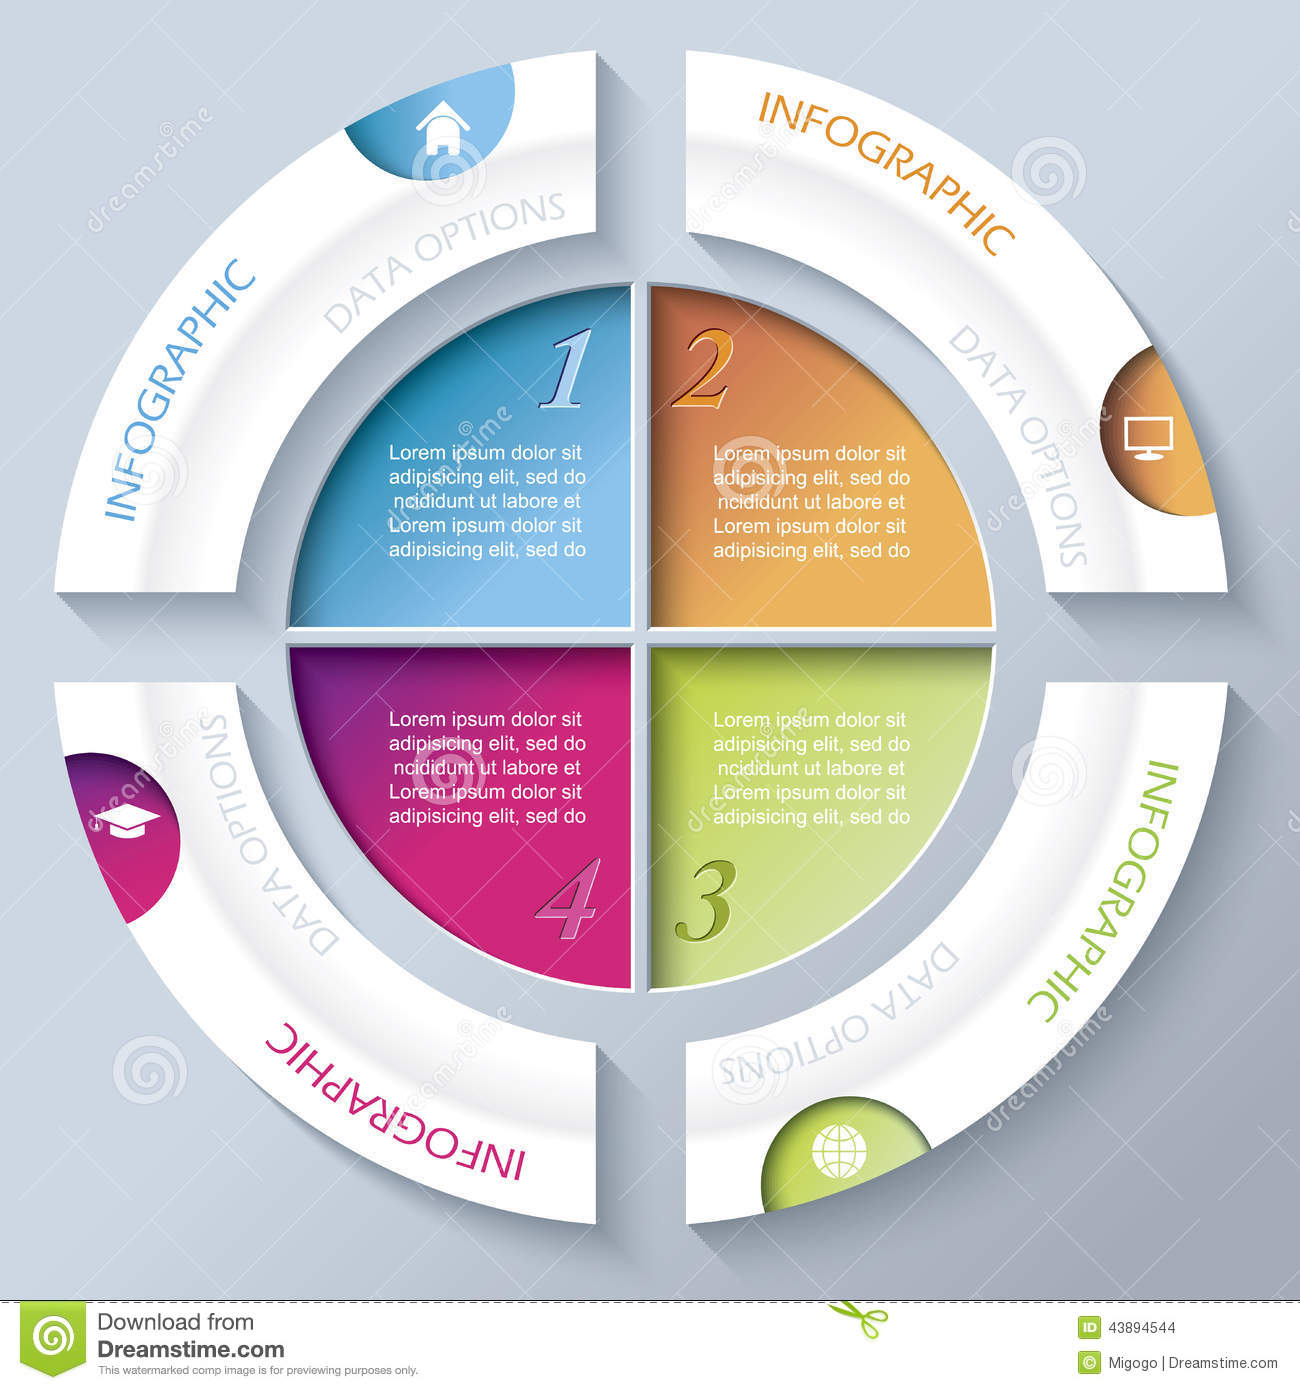 Abstract Infographic Design With Circle And Four Segments Stock Illustration